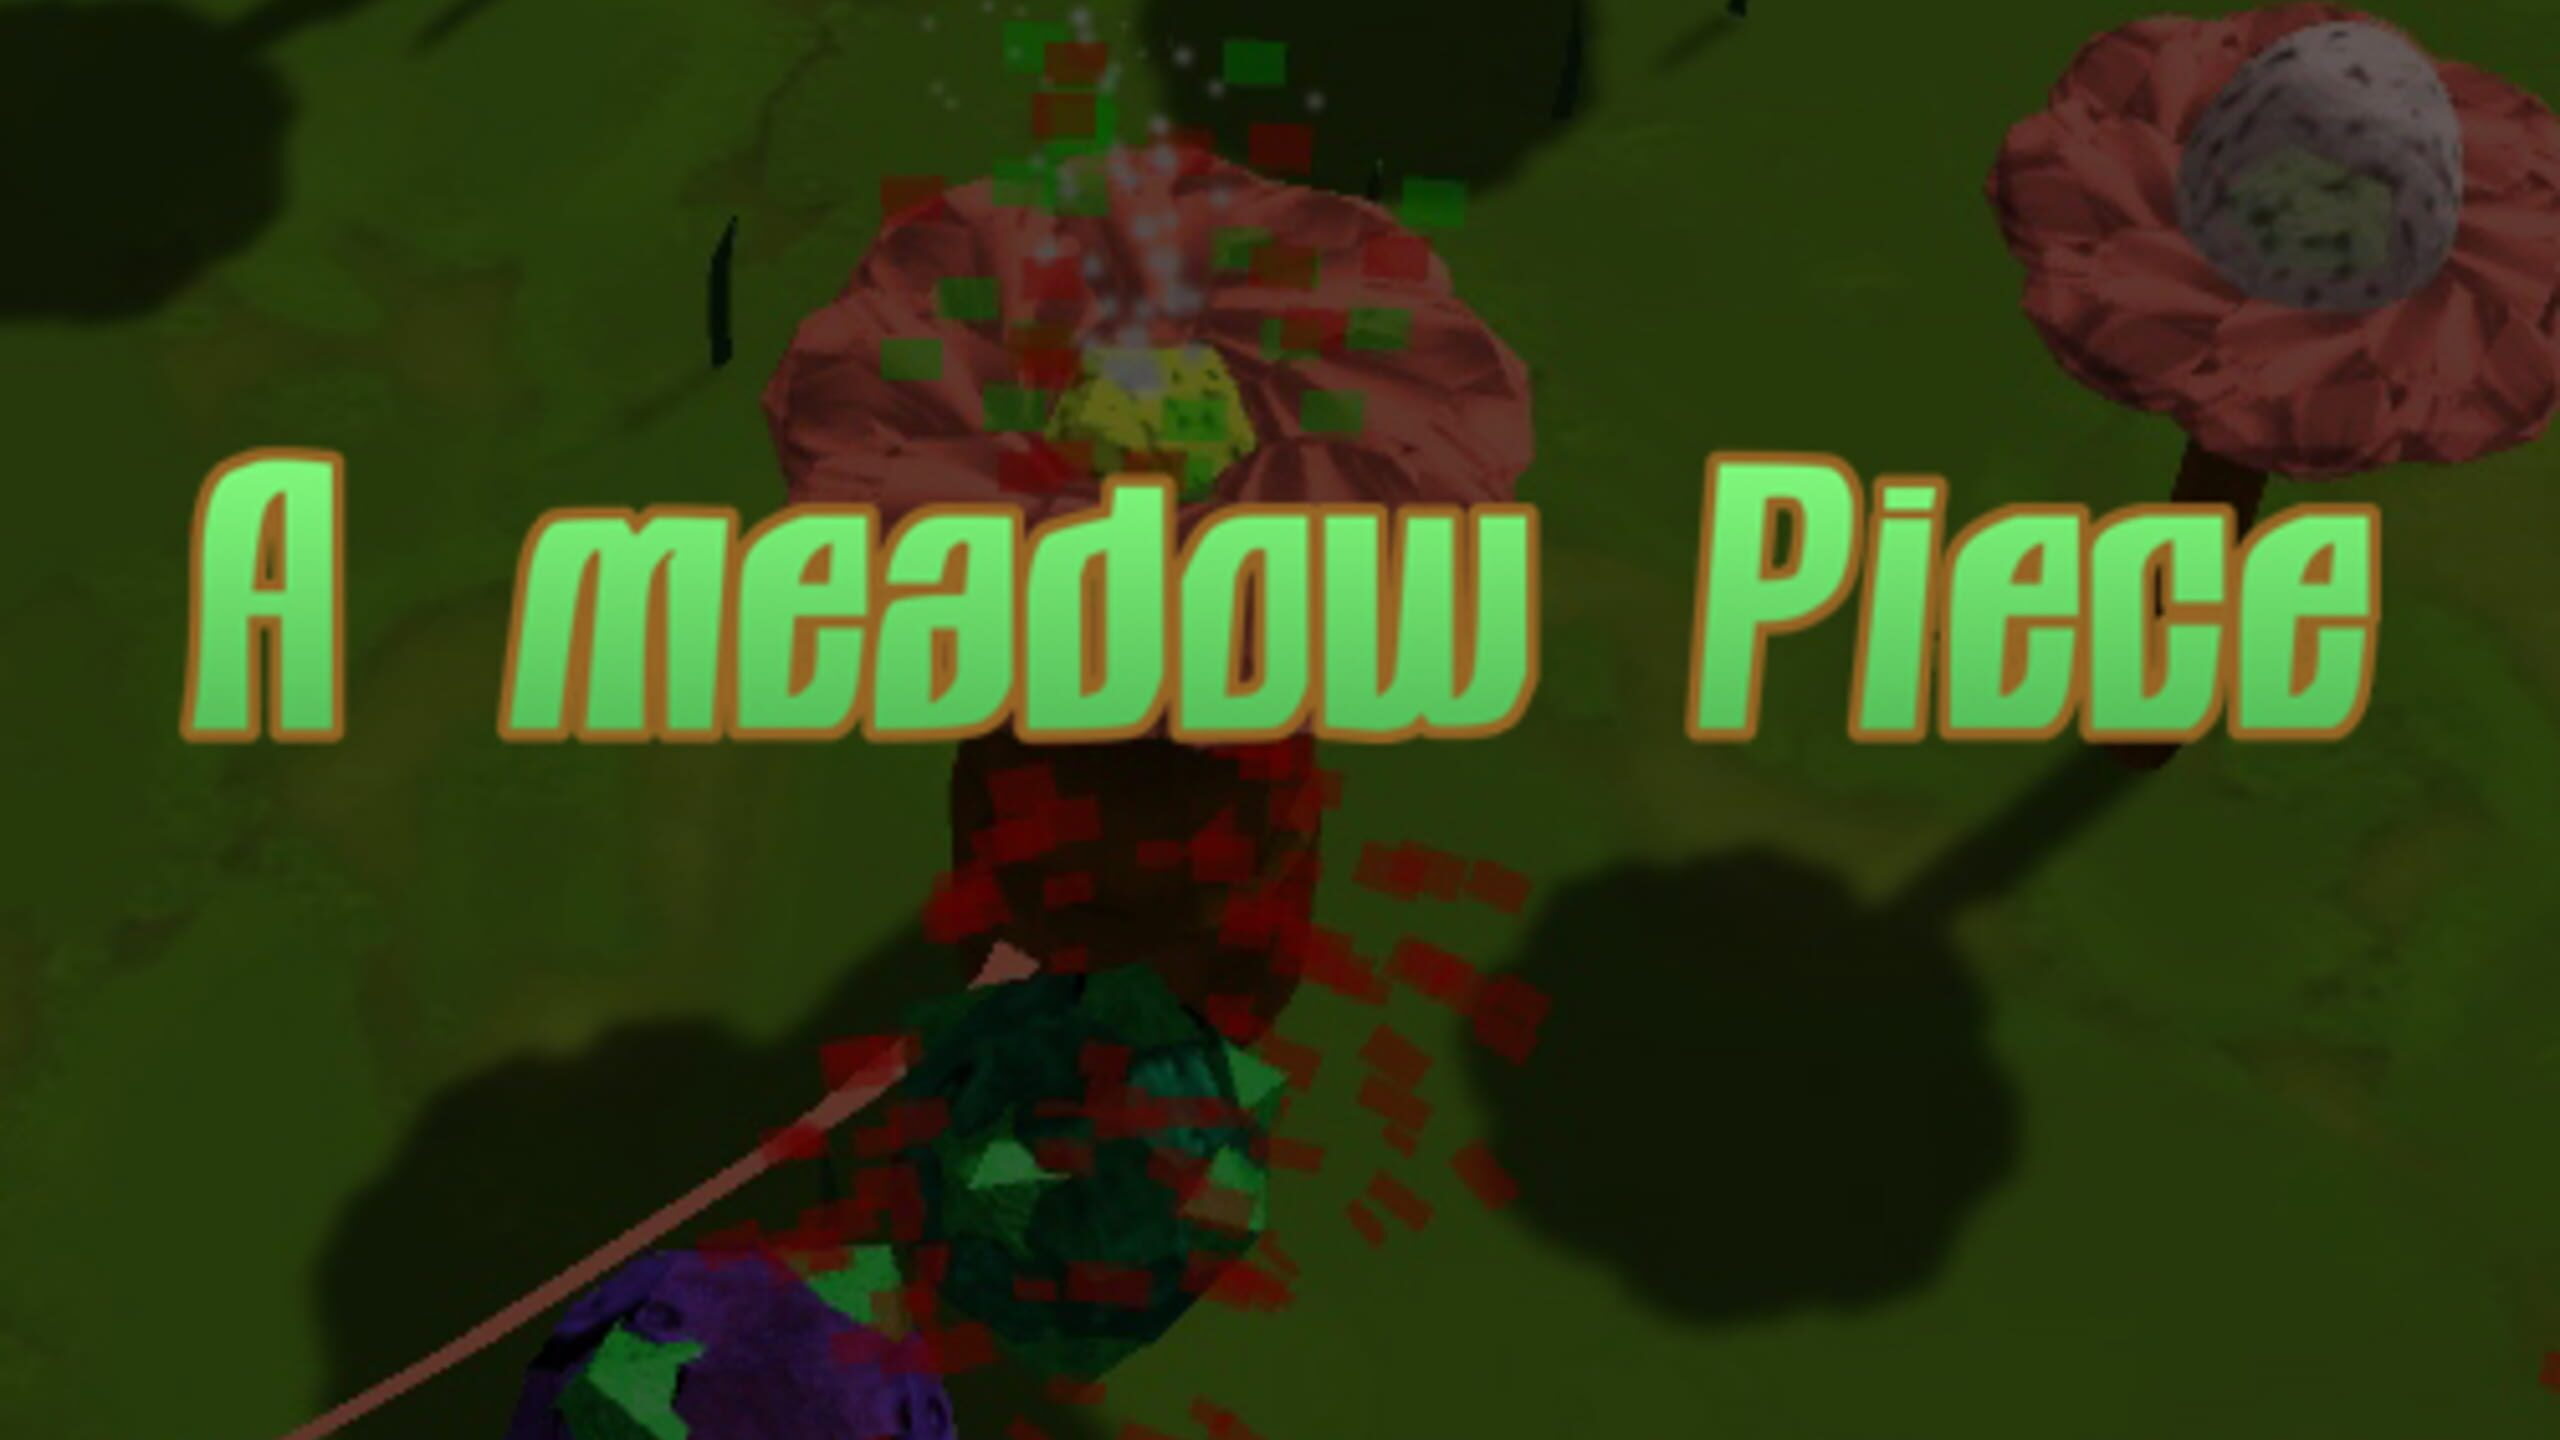 game cover art for A meadow Piece